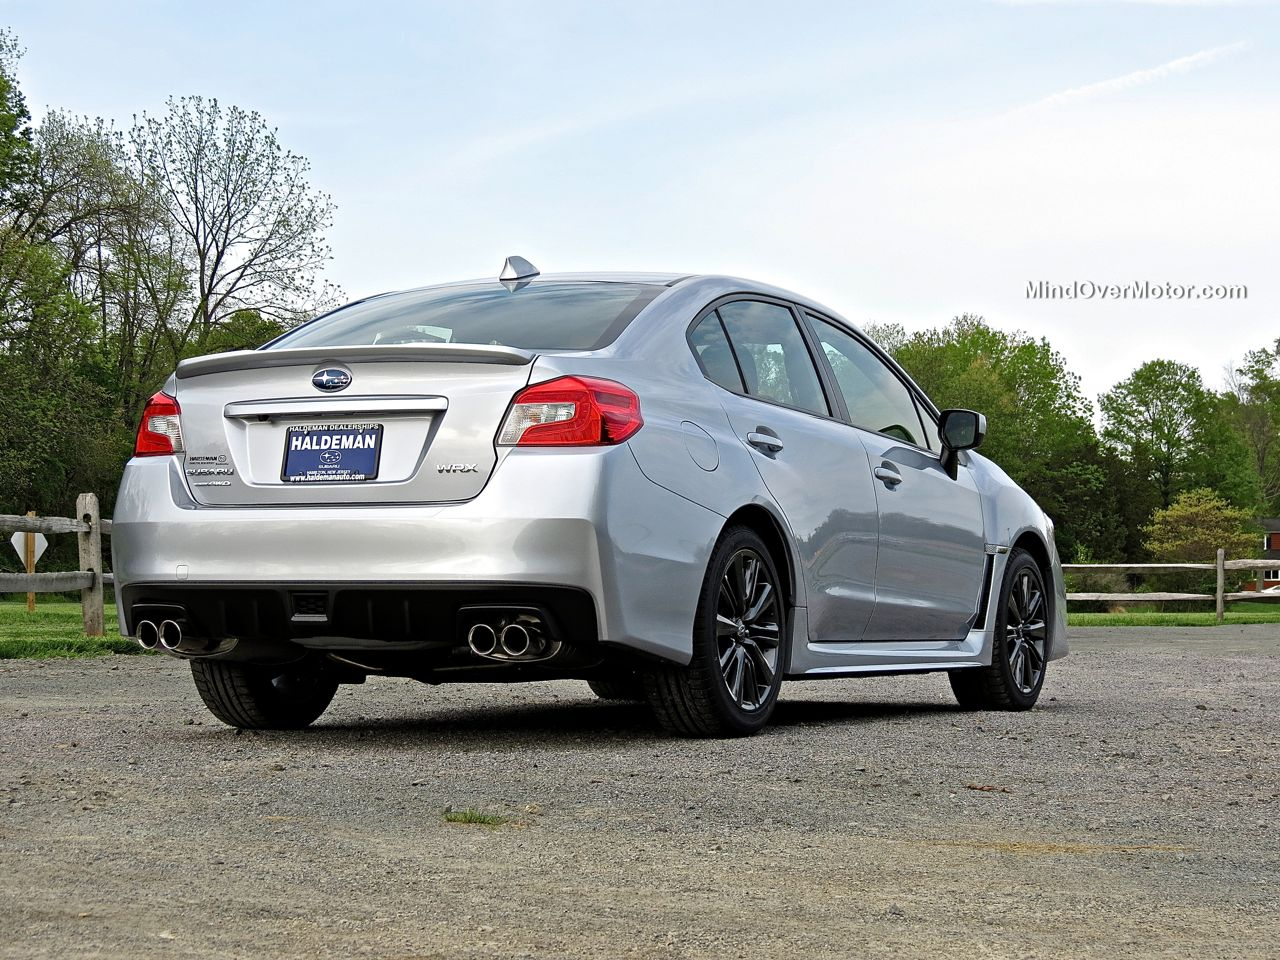 2015 Subaru WRX Rear by Mind Over Motor